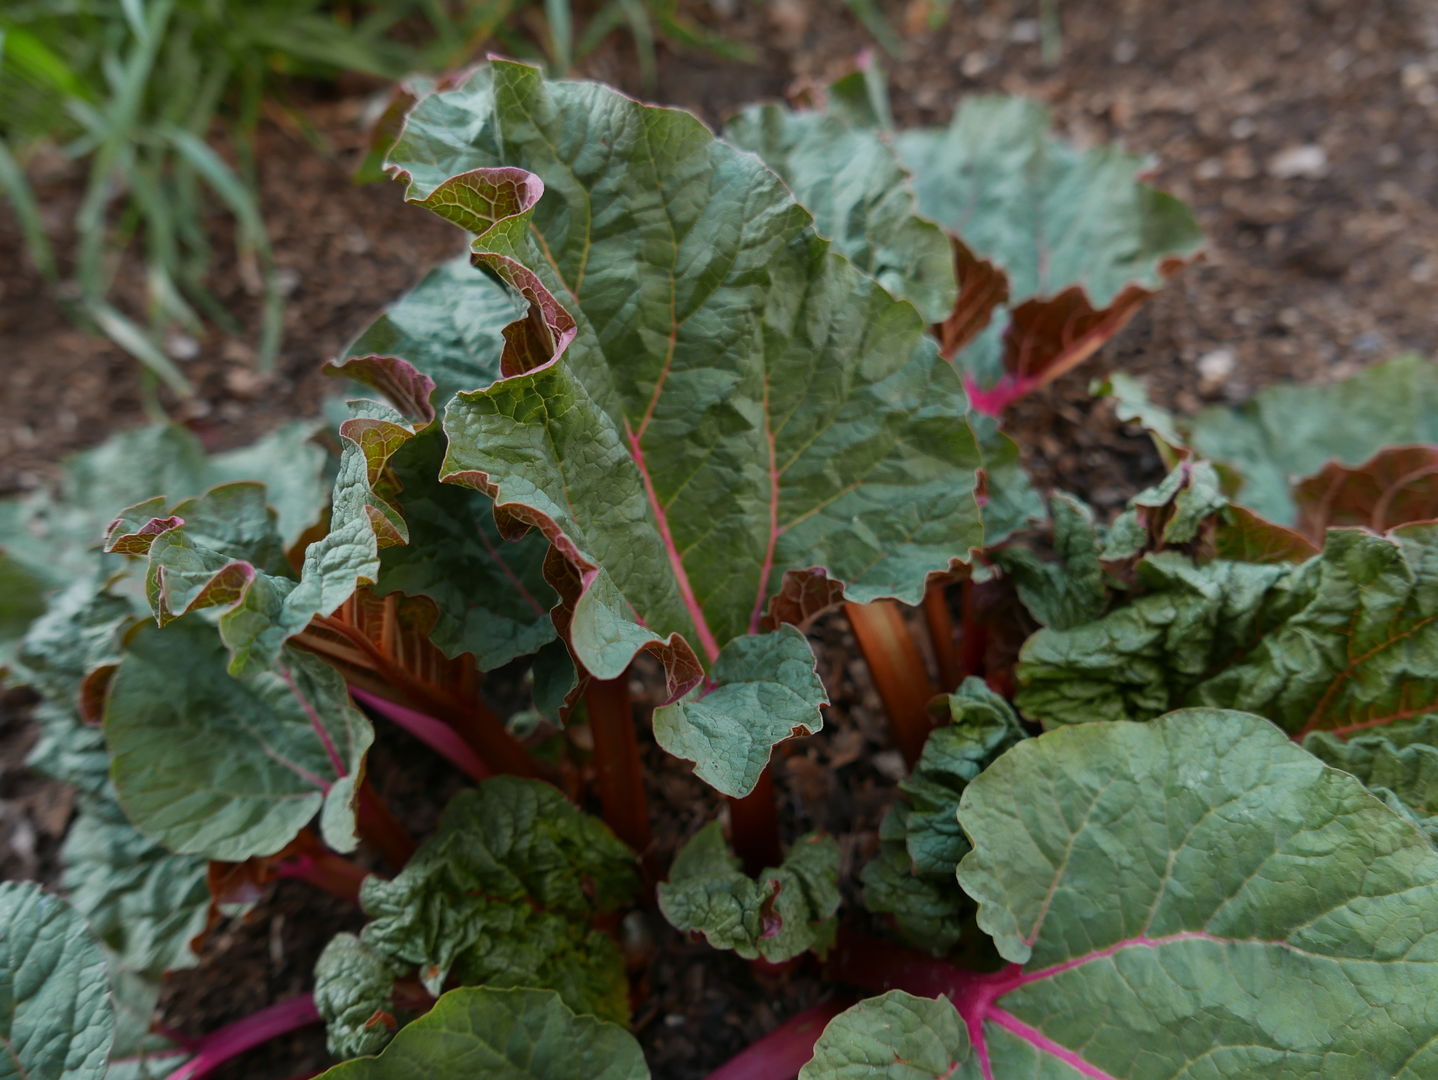 Emerging rhubarb leaves